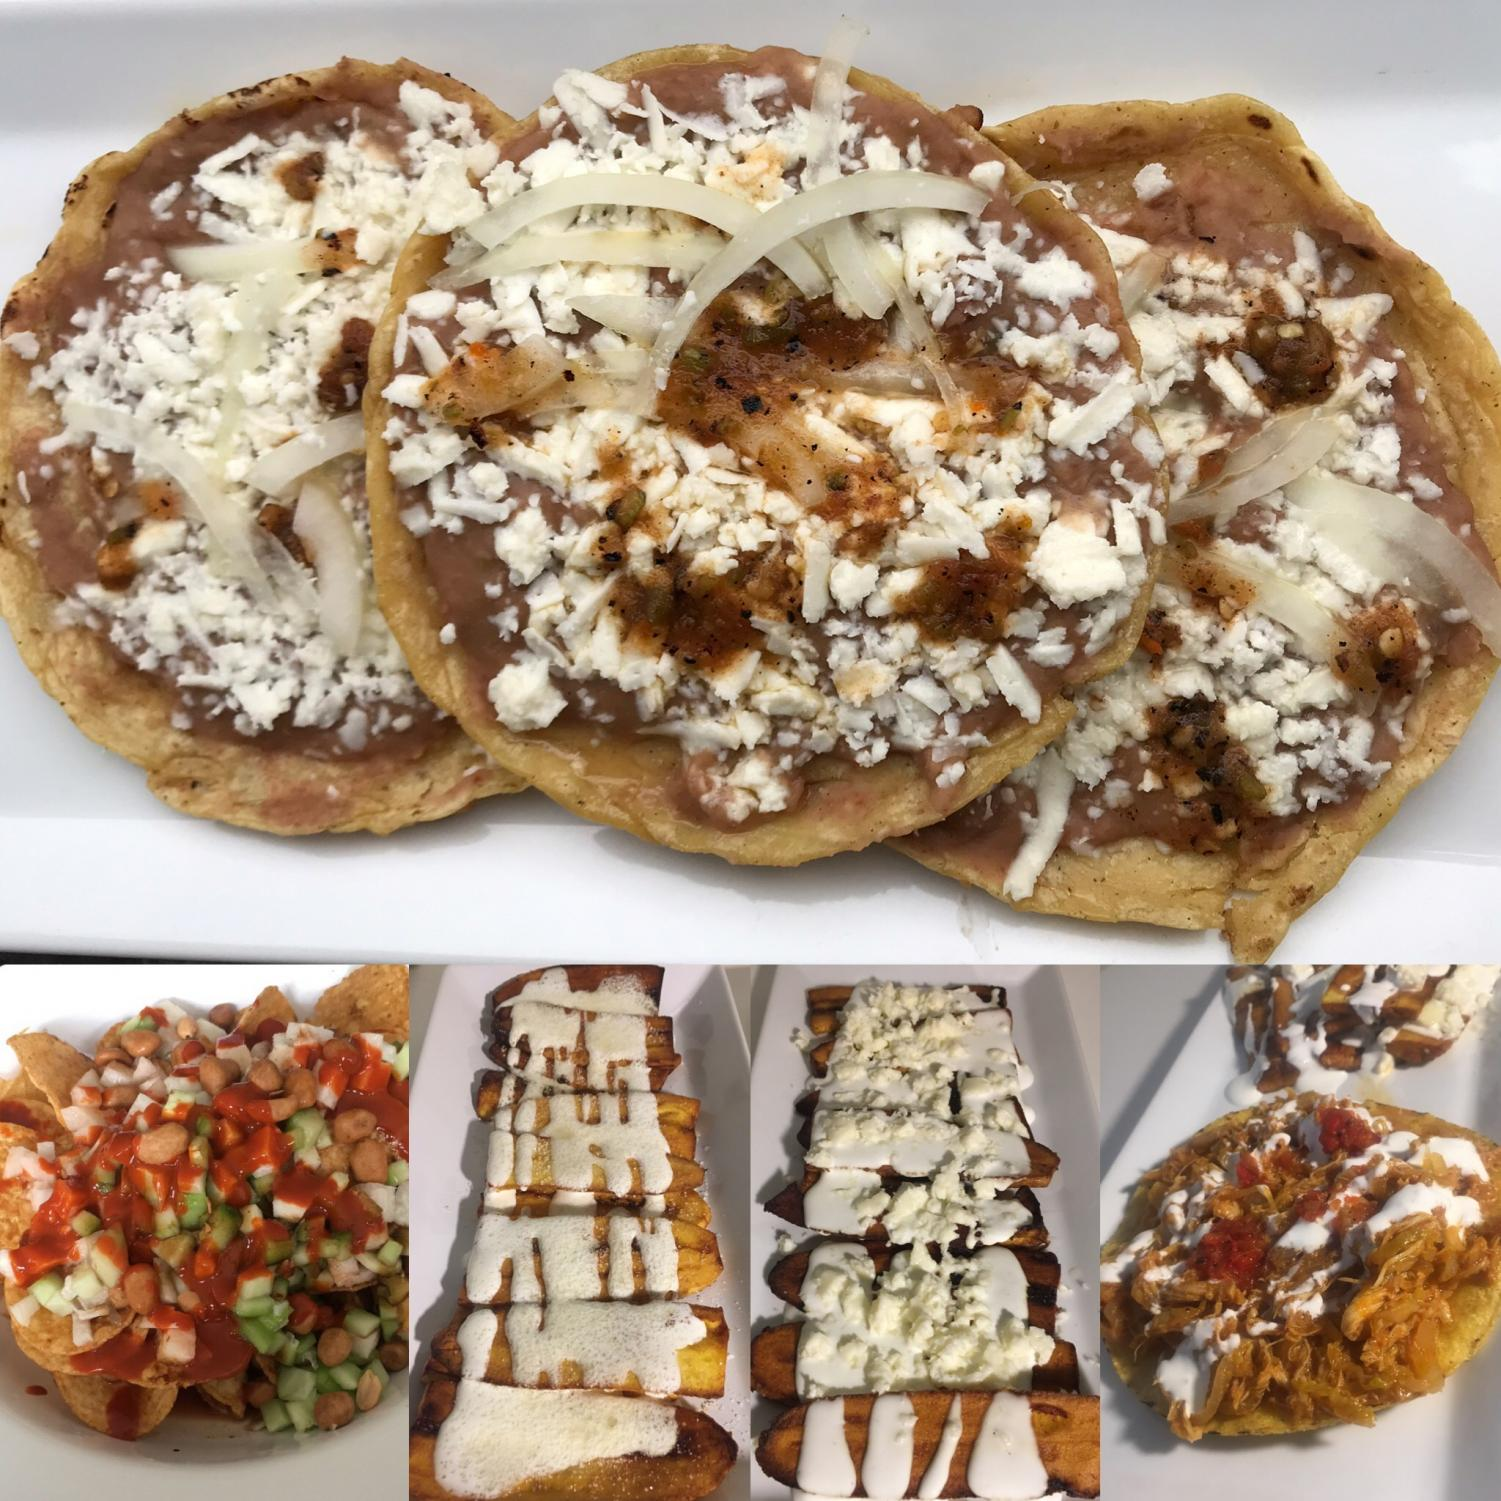 Tinga de pollo, sopes, mole, tostilocos and plátanos fritos.